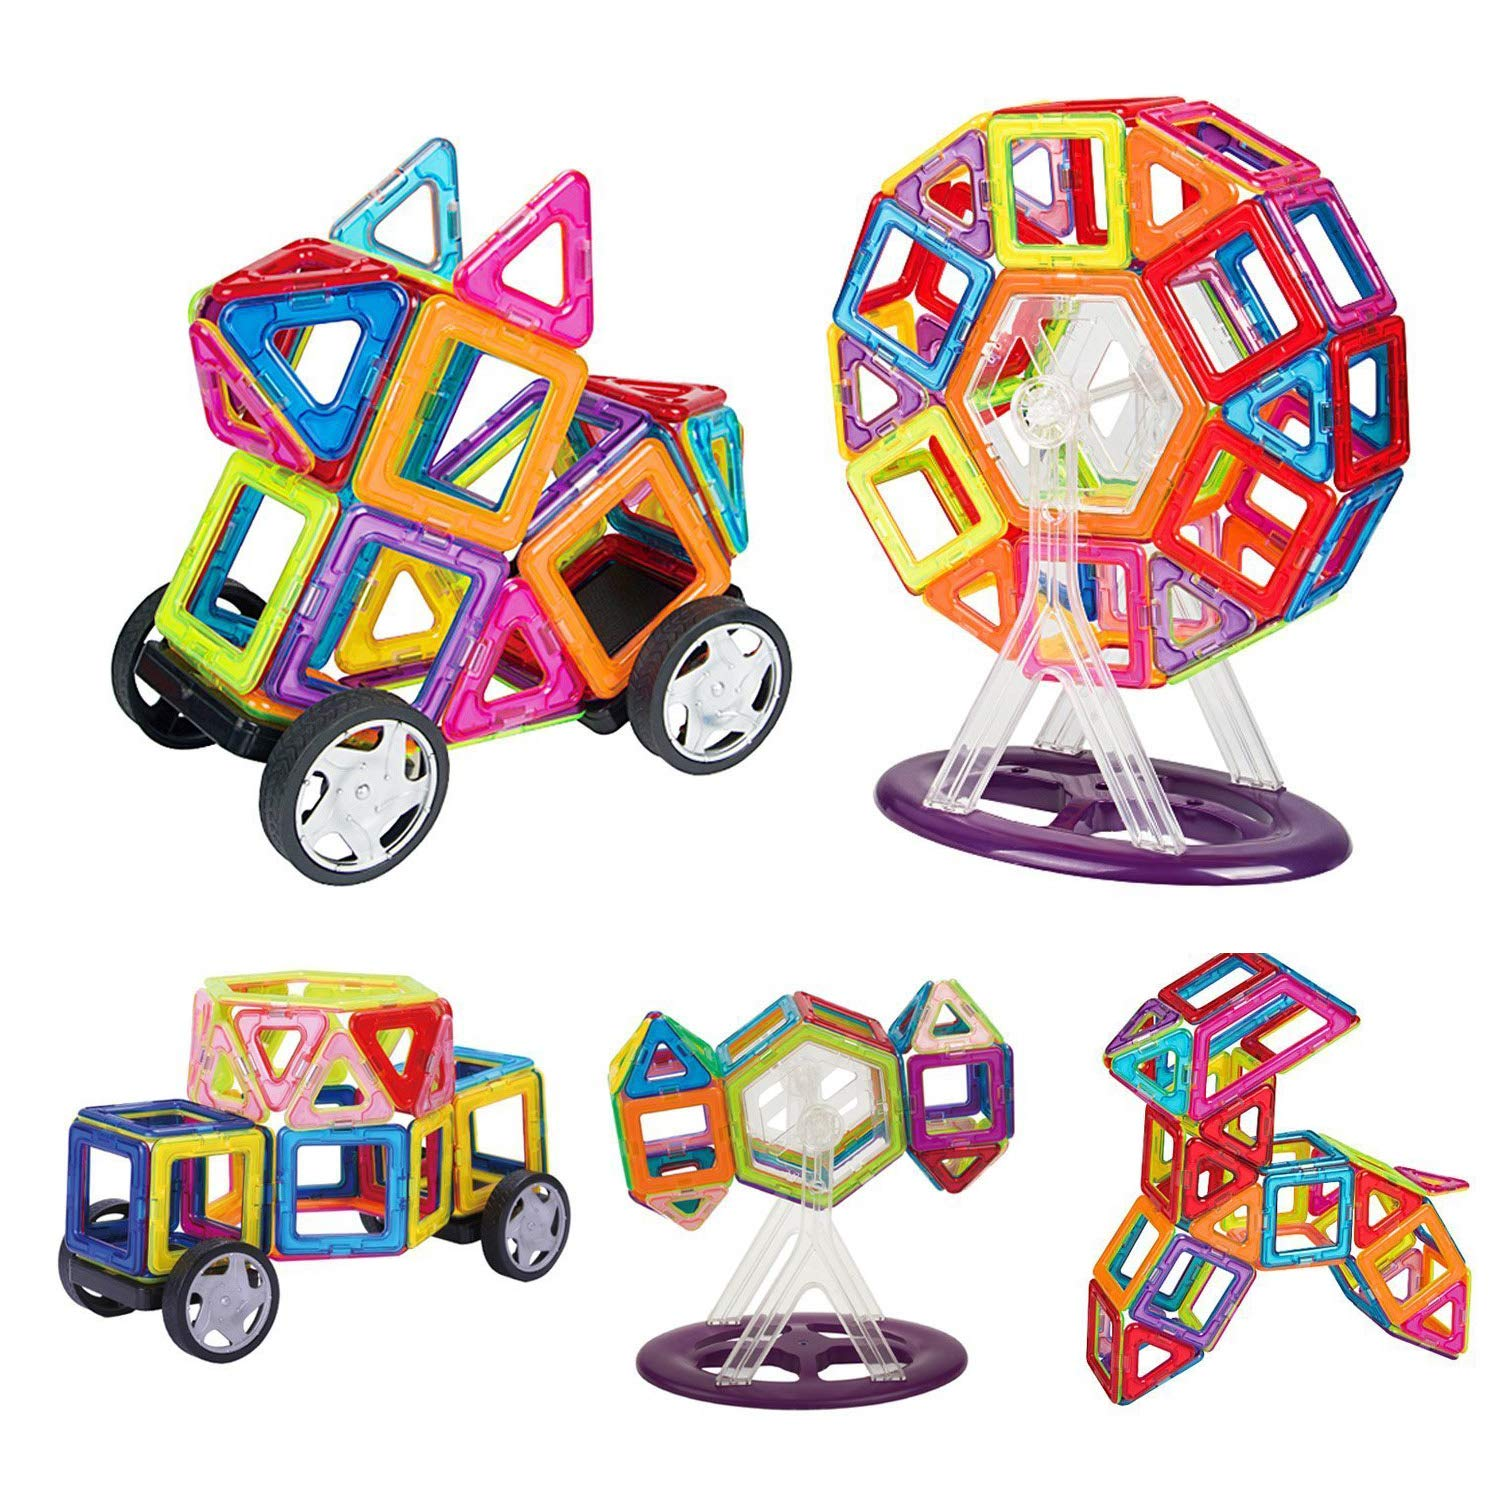 INTEY Magnetic Building Blocks 66 Magnetic Construction Blocks Toddlers Magnetic building blocks